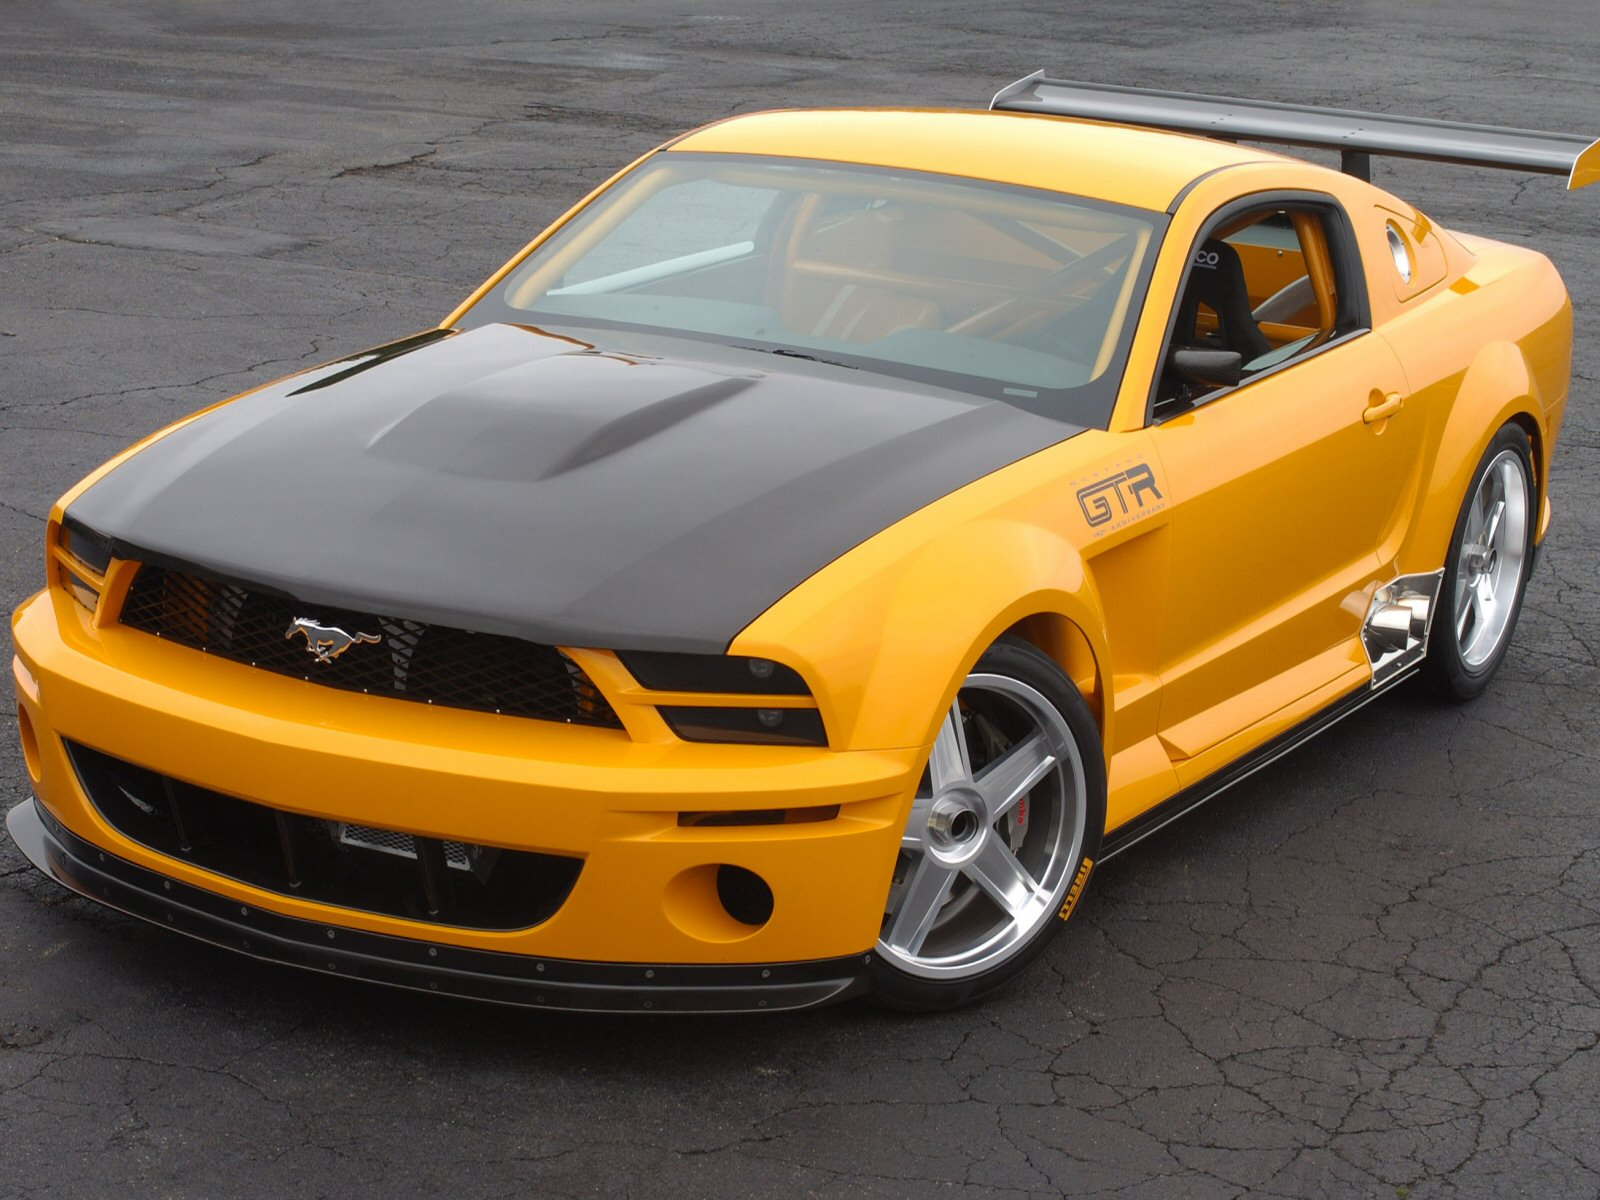 Ford Mustang GT photo 7003